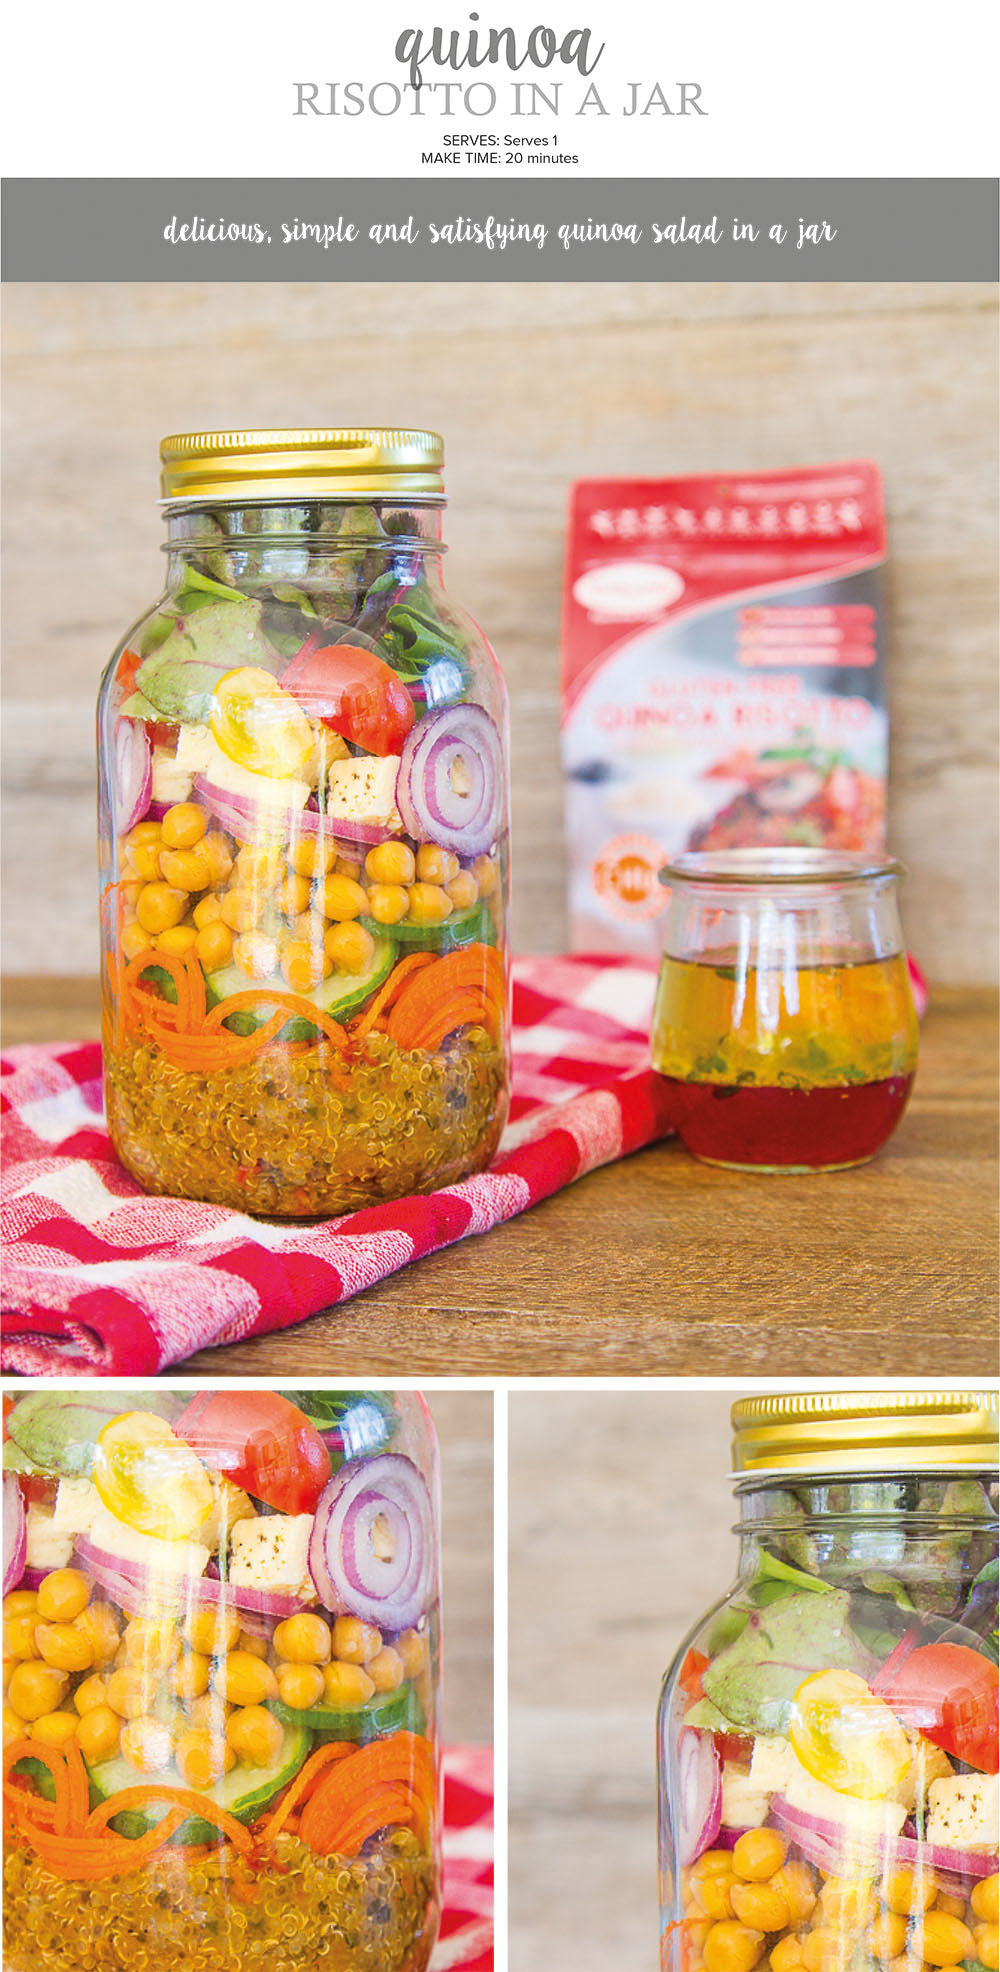 Quinoa Risotto in a jar recipe